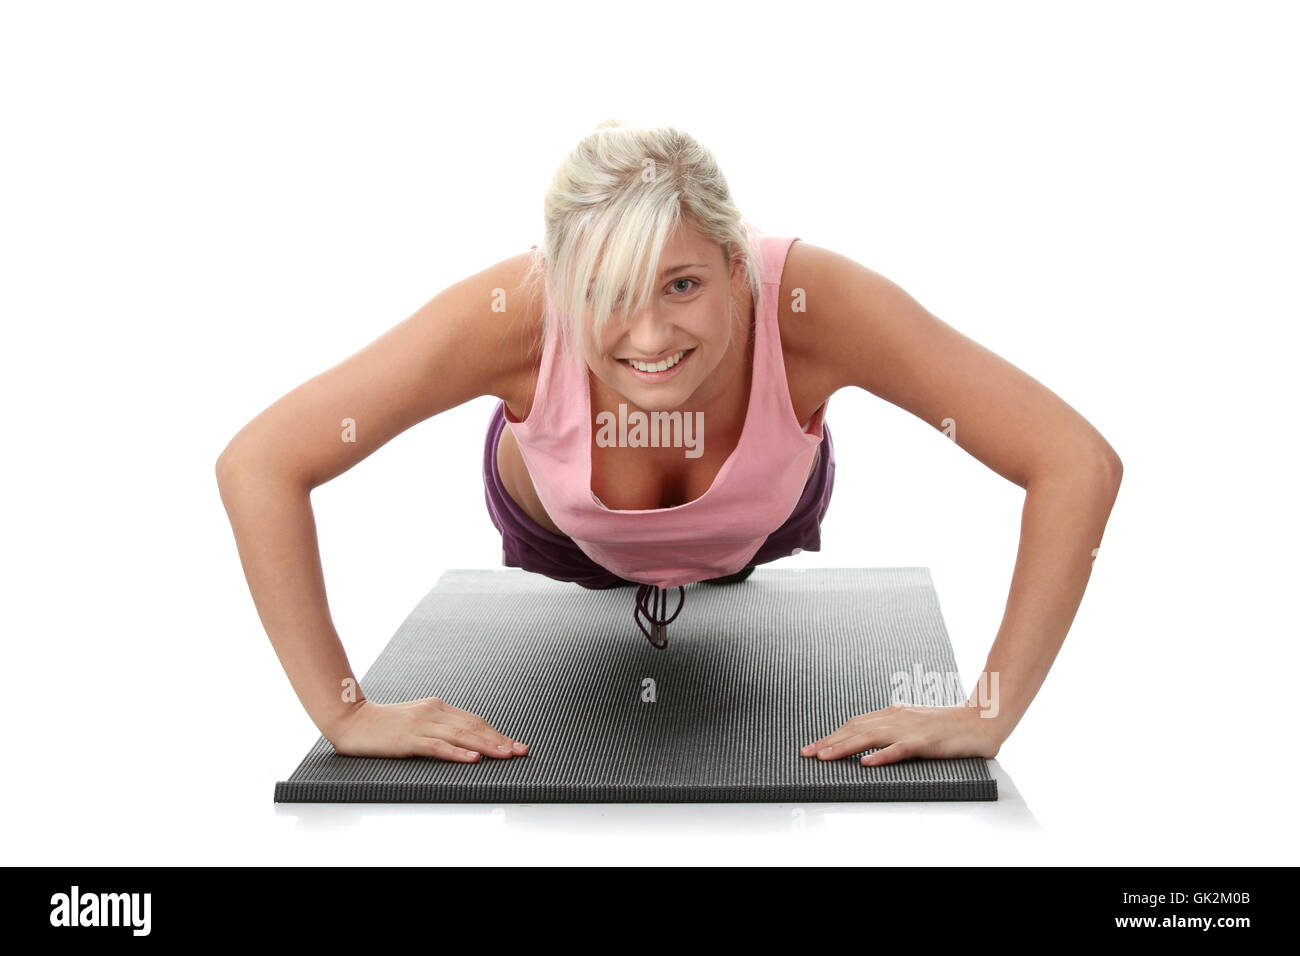 young beautiful woman during fitness time - Stock Image